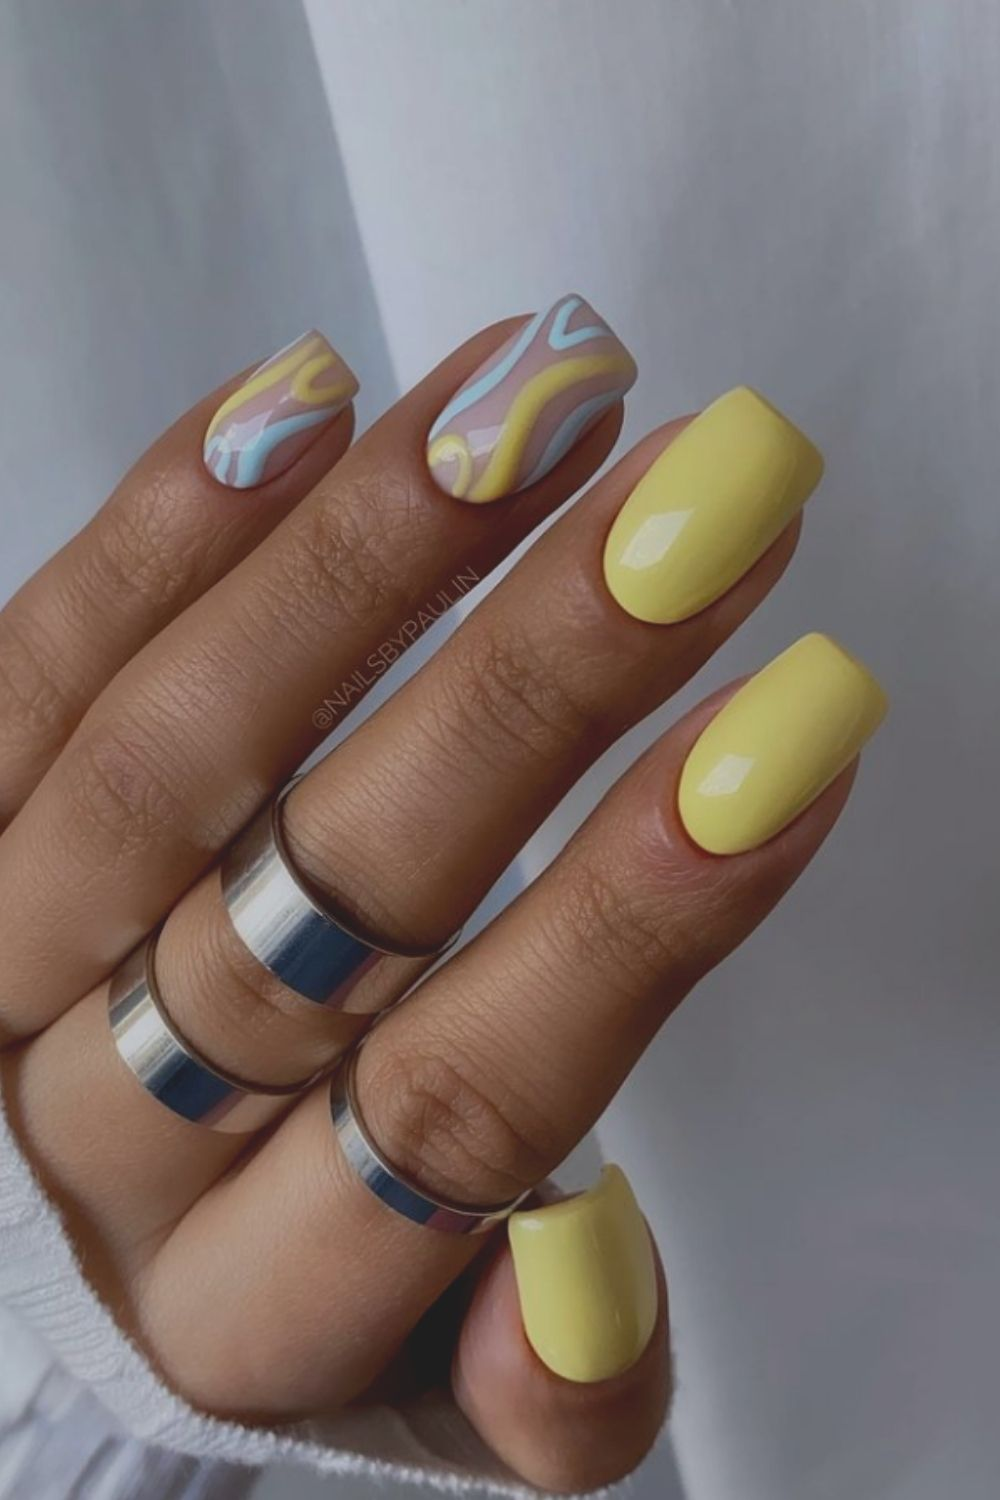 Yellow and light blue nails